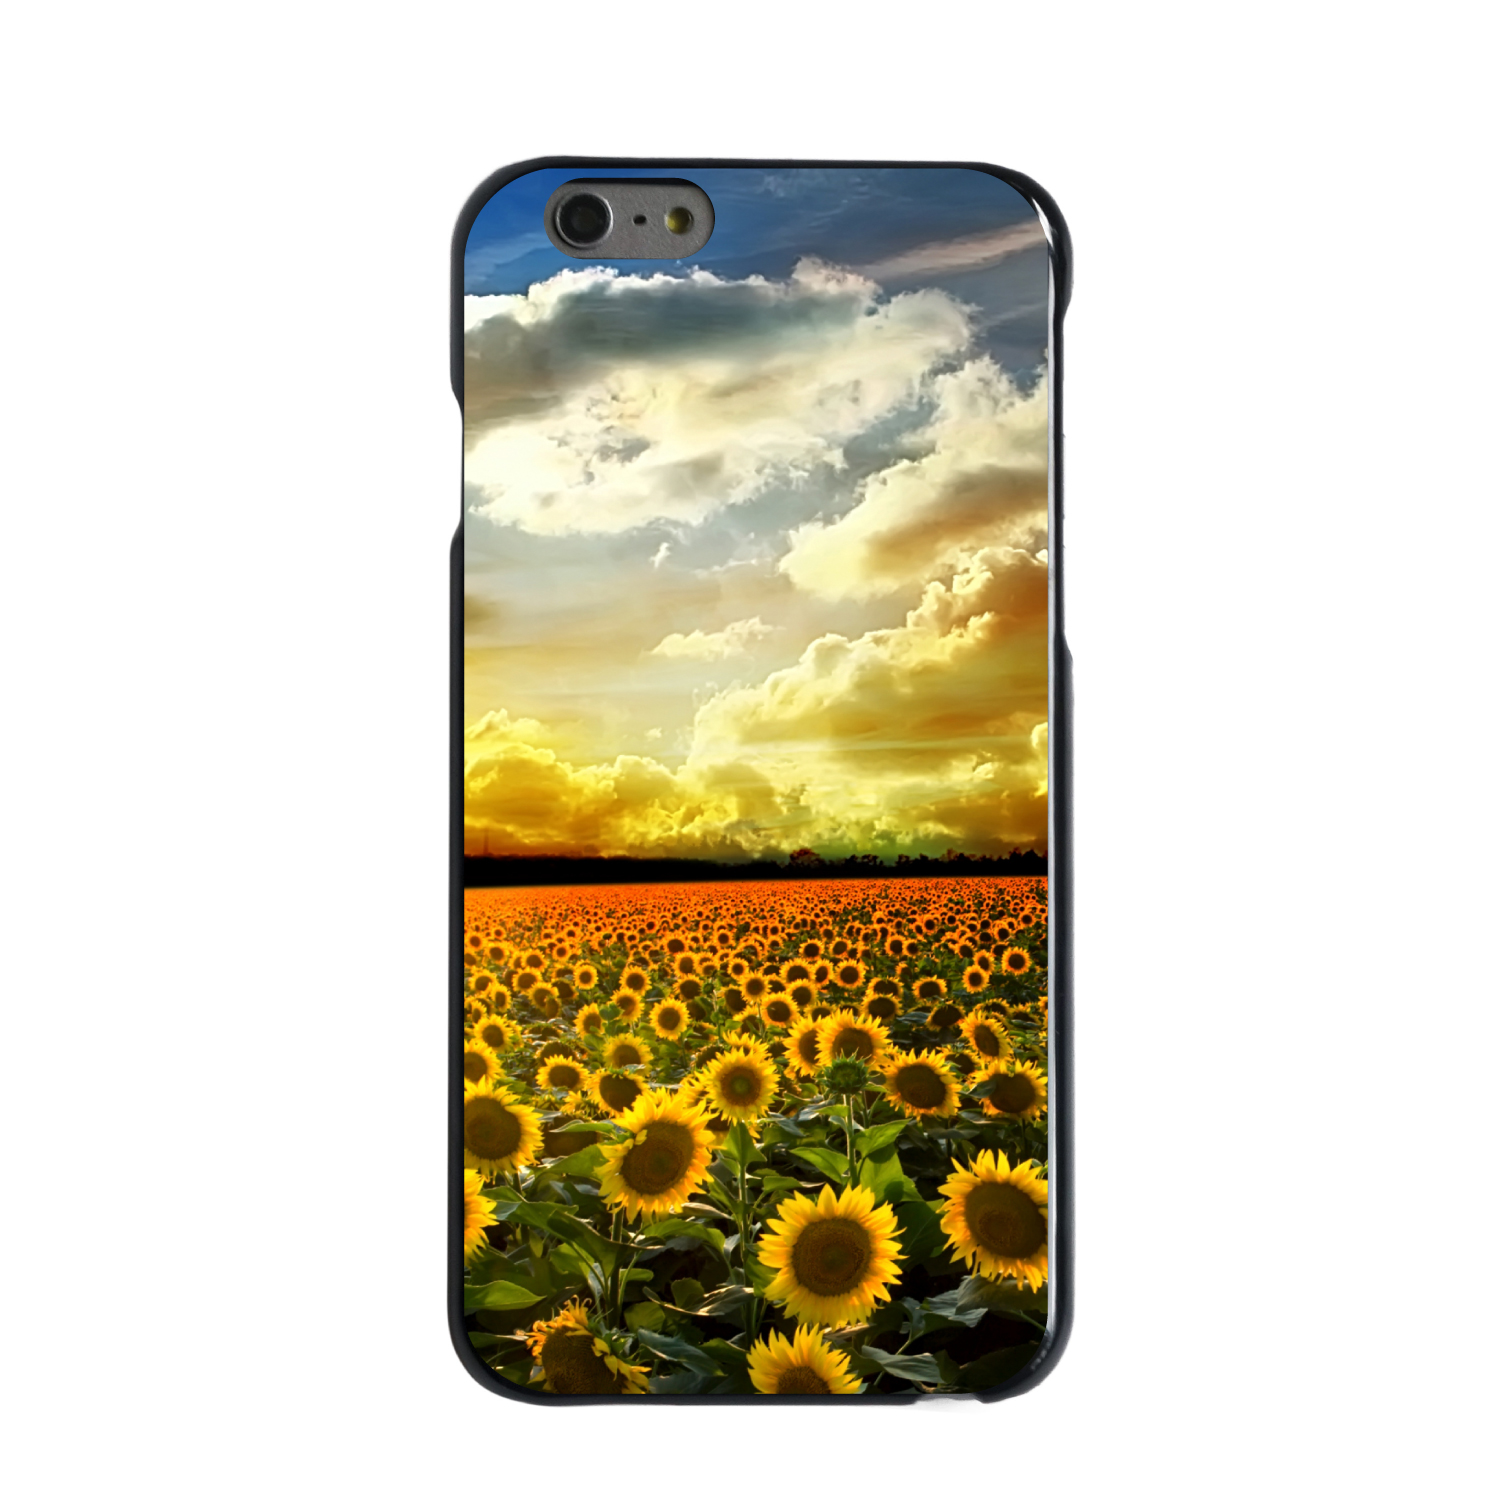 "CUSTOM Black Hard Plastic Snap-On Case for Apple iPhone 6 PLUS / 6S PLUS (5.5"" Screen) - Green Blue Yellow Sunflowers"